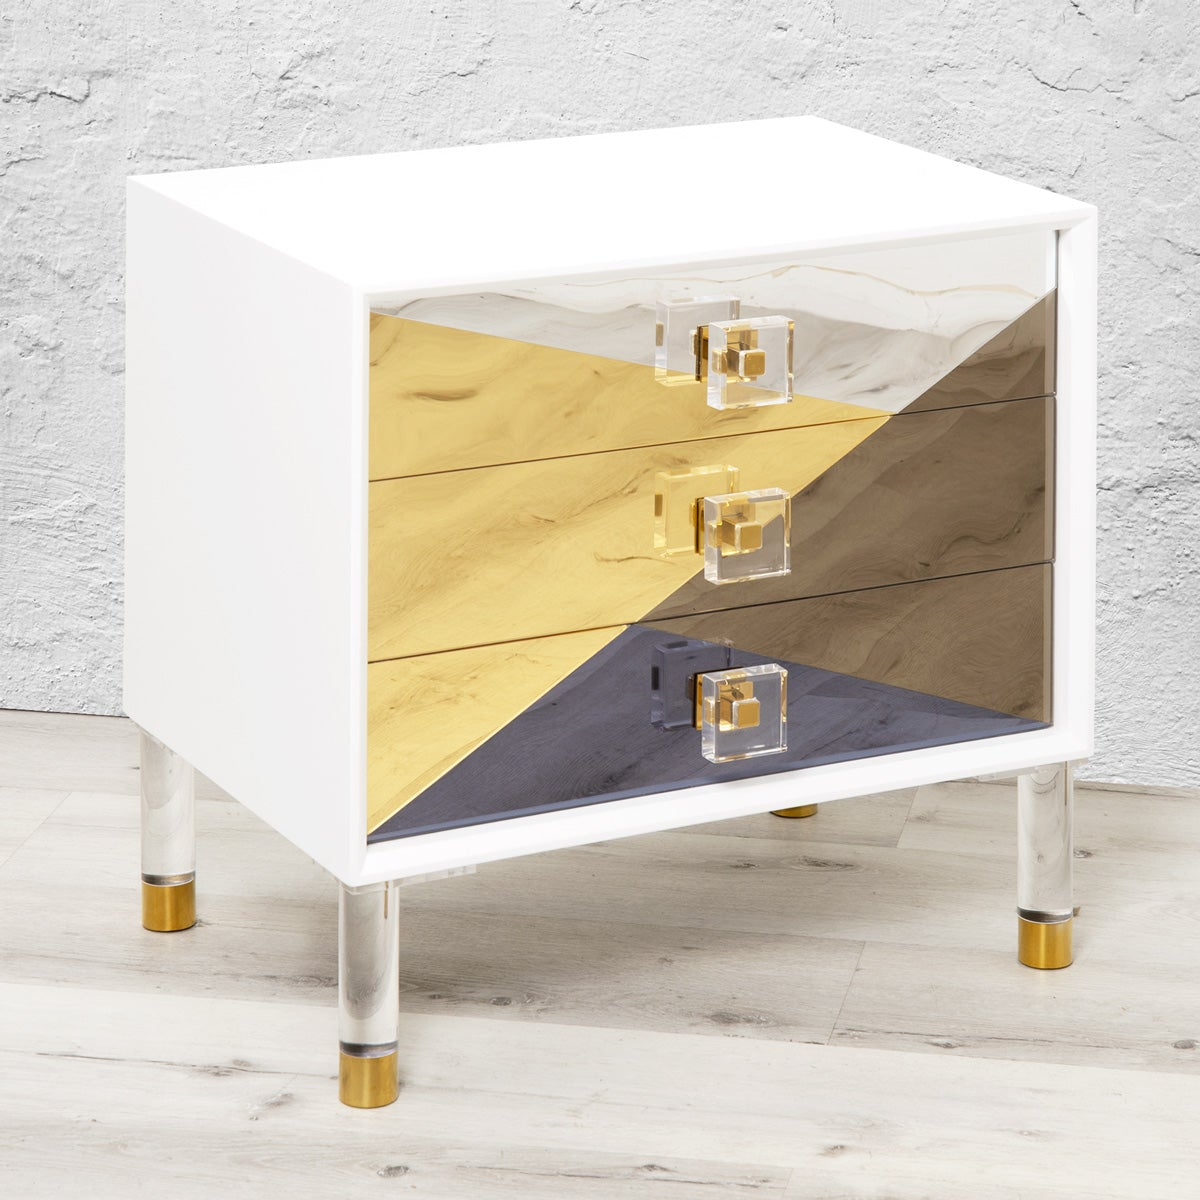 Studio 54 Mirrored Side Table - ModShop1.com